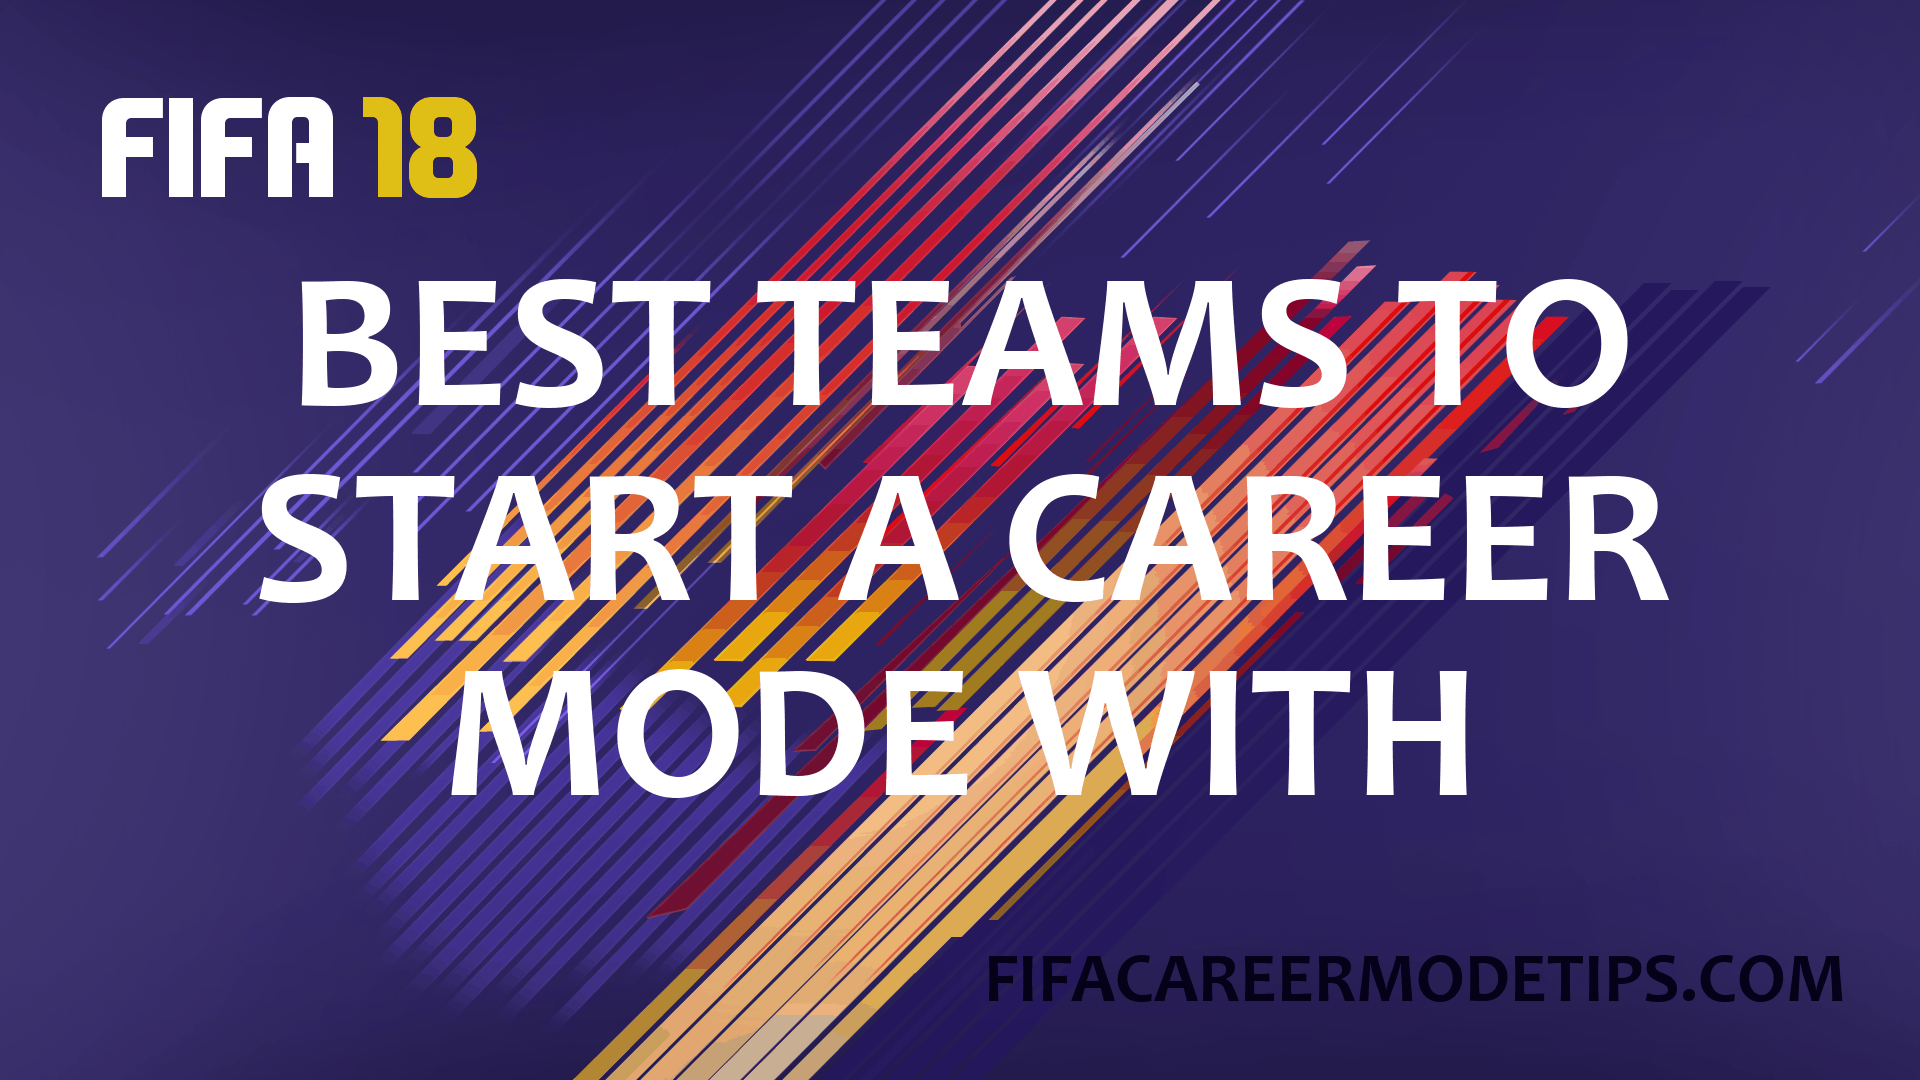 Best Teams to Start a Career Mode With